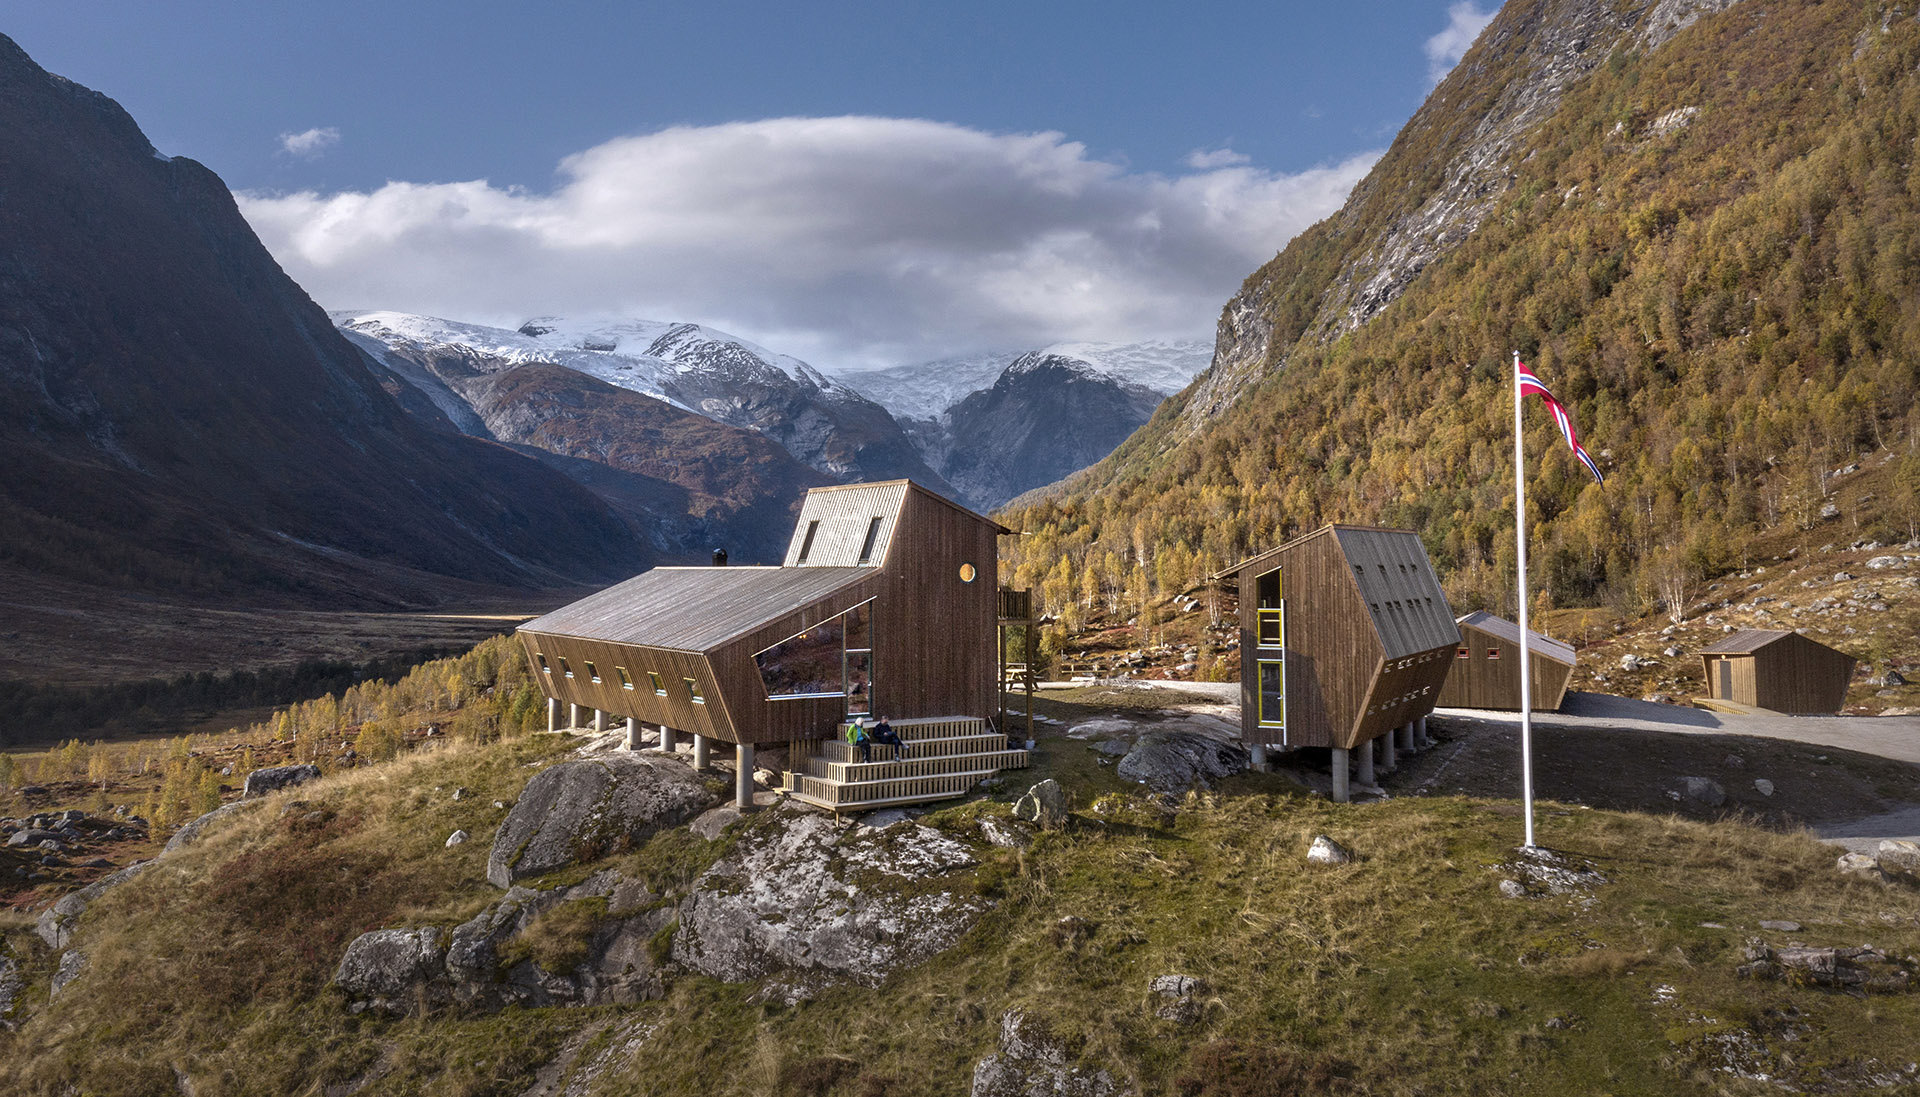 Group of wooden cabins in the mountains